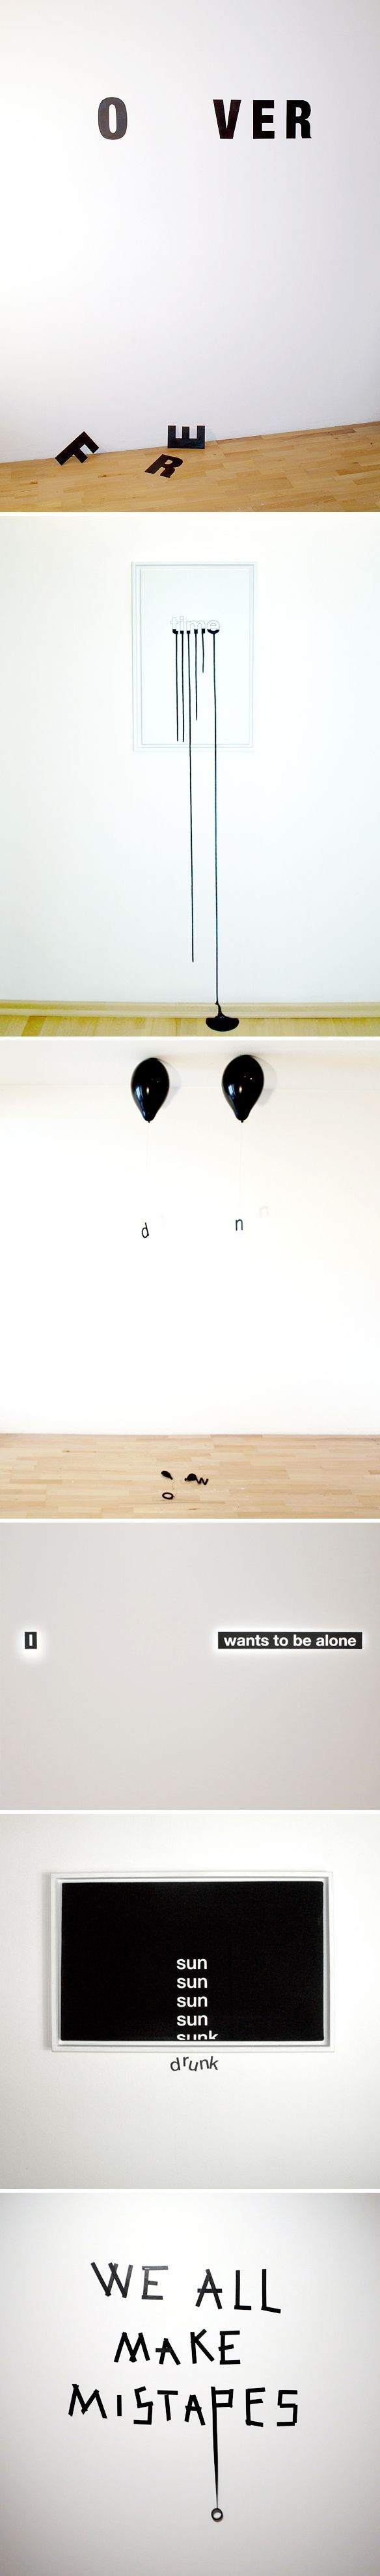 """""""nothing lasts forever"""" ; """"time is running out"""" ; """"up & down"""" ; """"alone"""" ; """"when the sun goes down"""" ; """"we all make mistapes"""" … LOVE! Clever, text-based work by Austrian artist Anatol Knotek."""